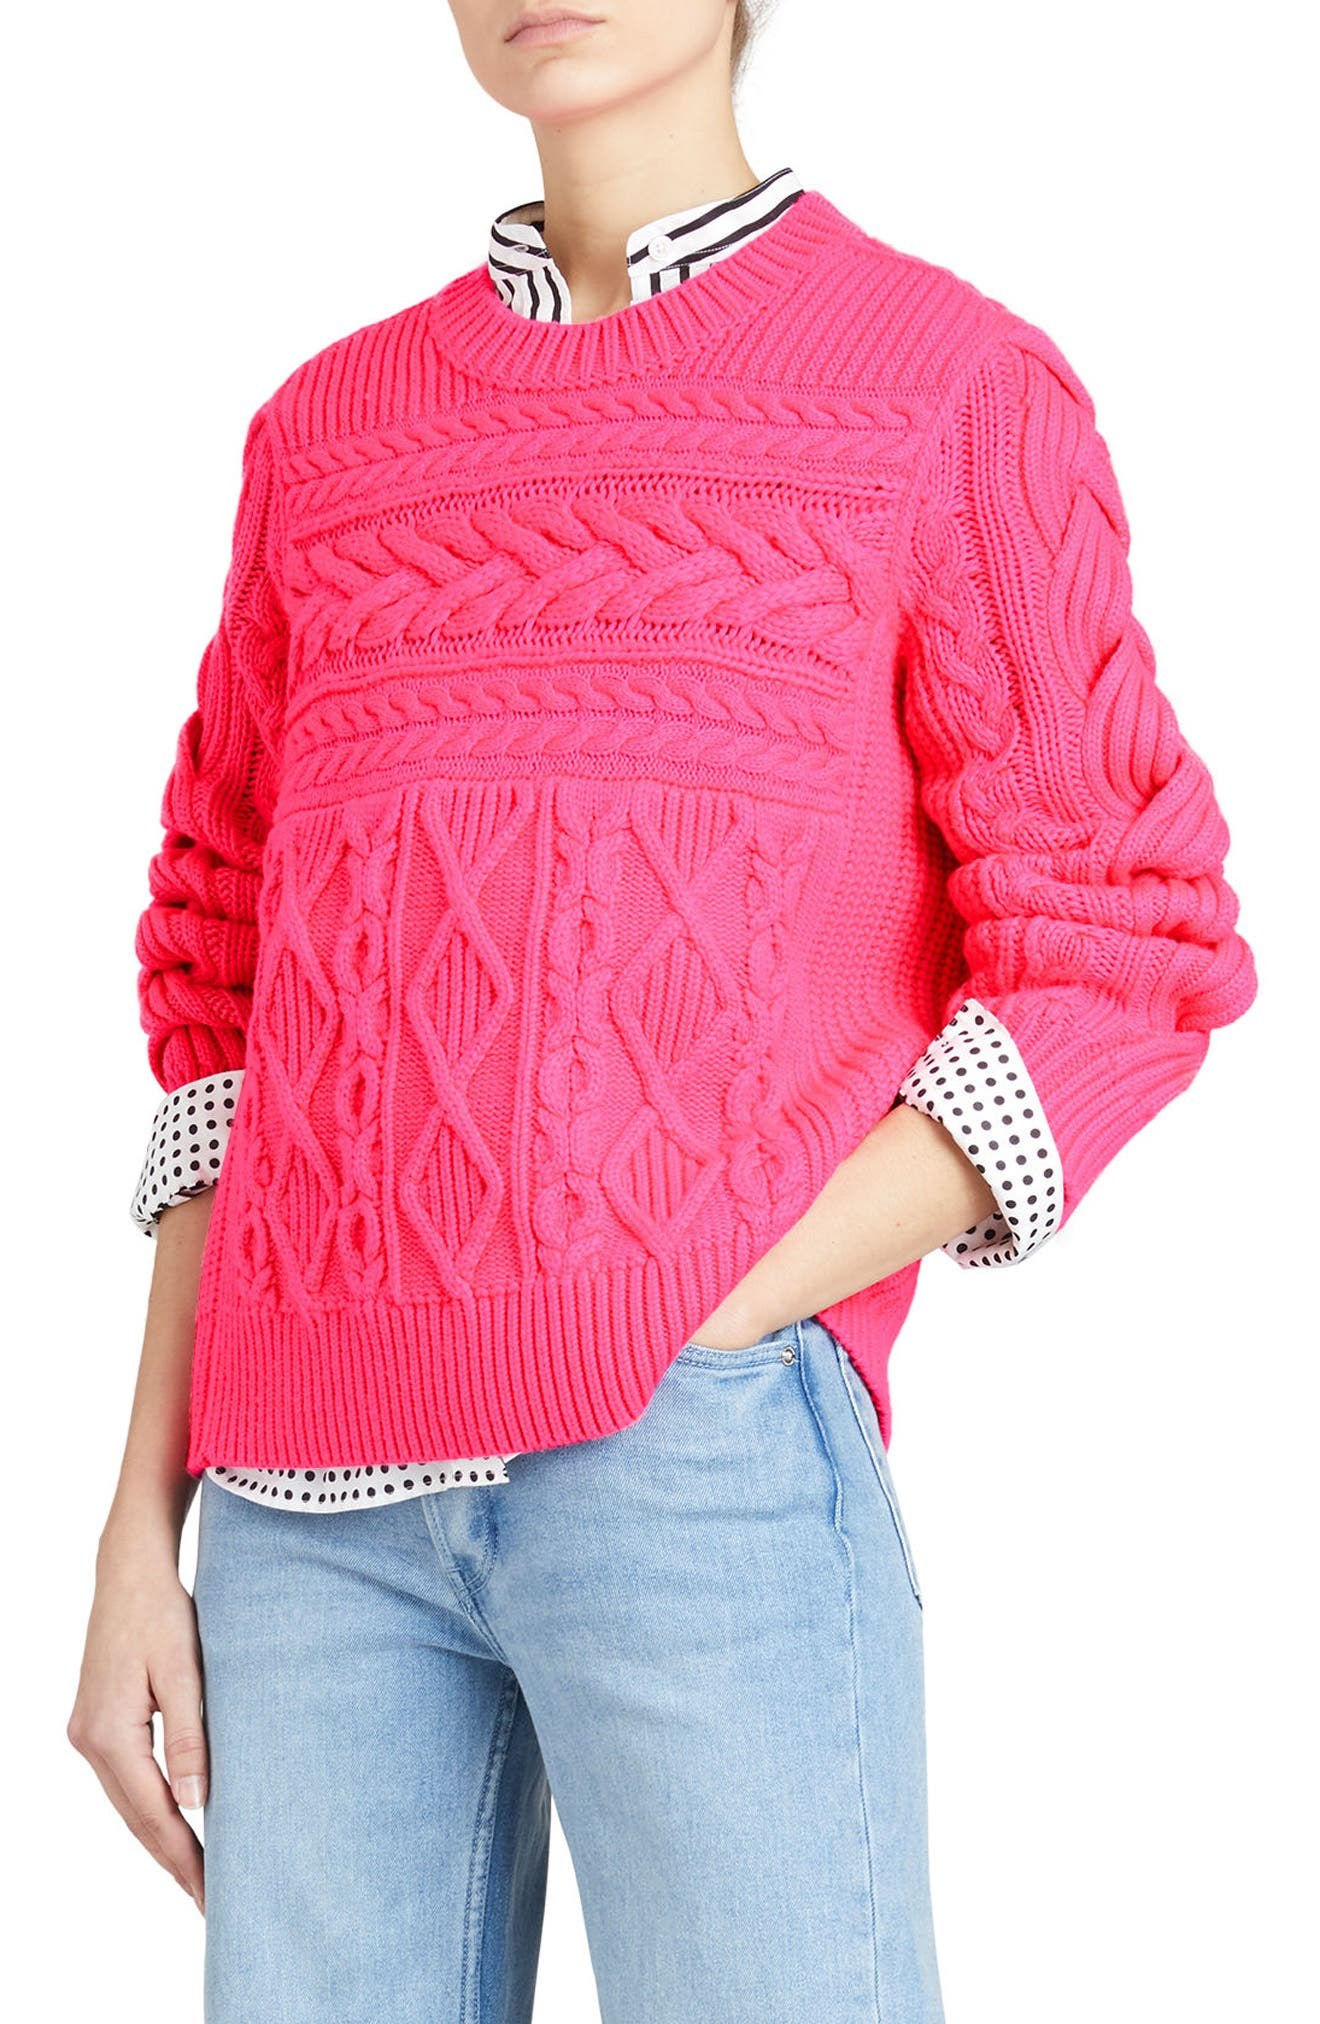 Tolman Aran Knit Sweater,                             Main thumbnail 1, color,